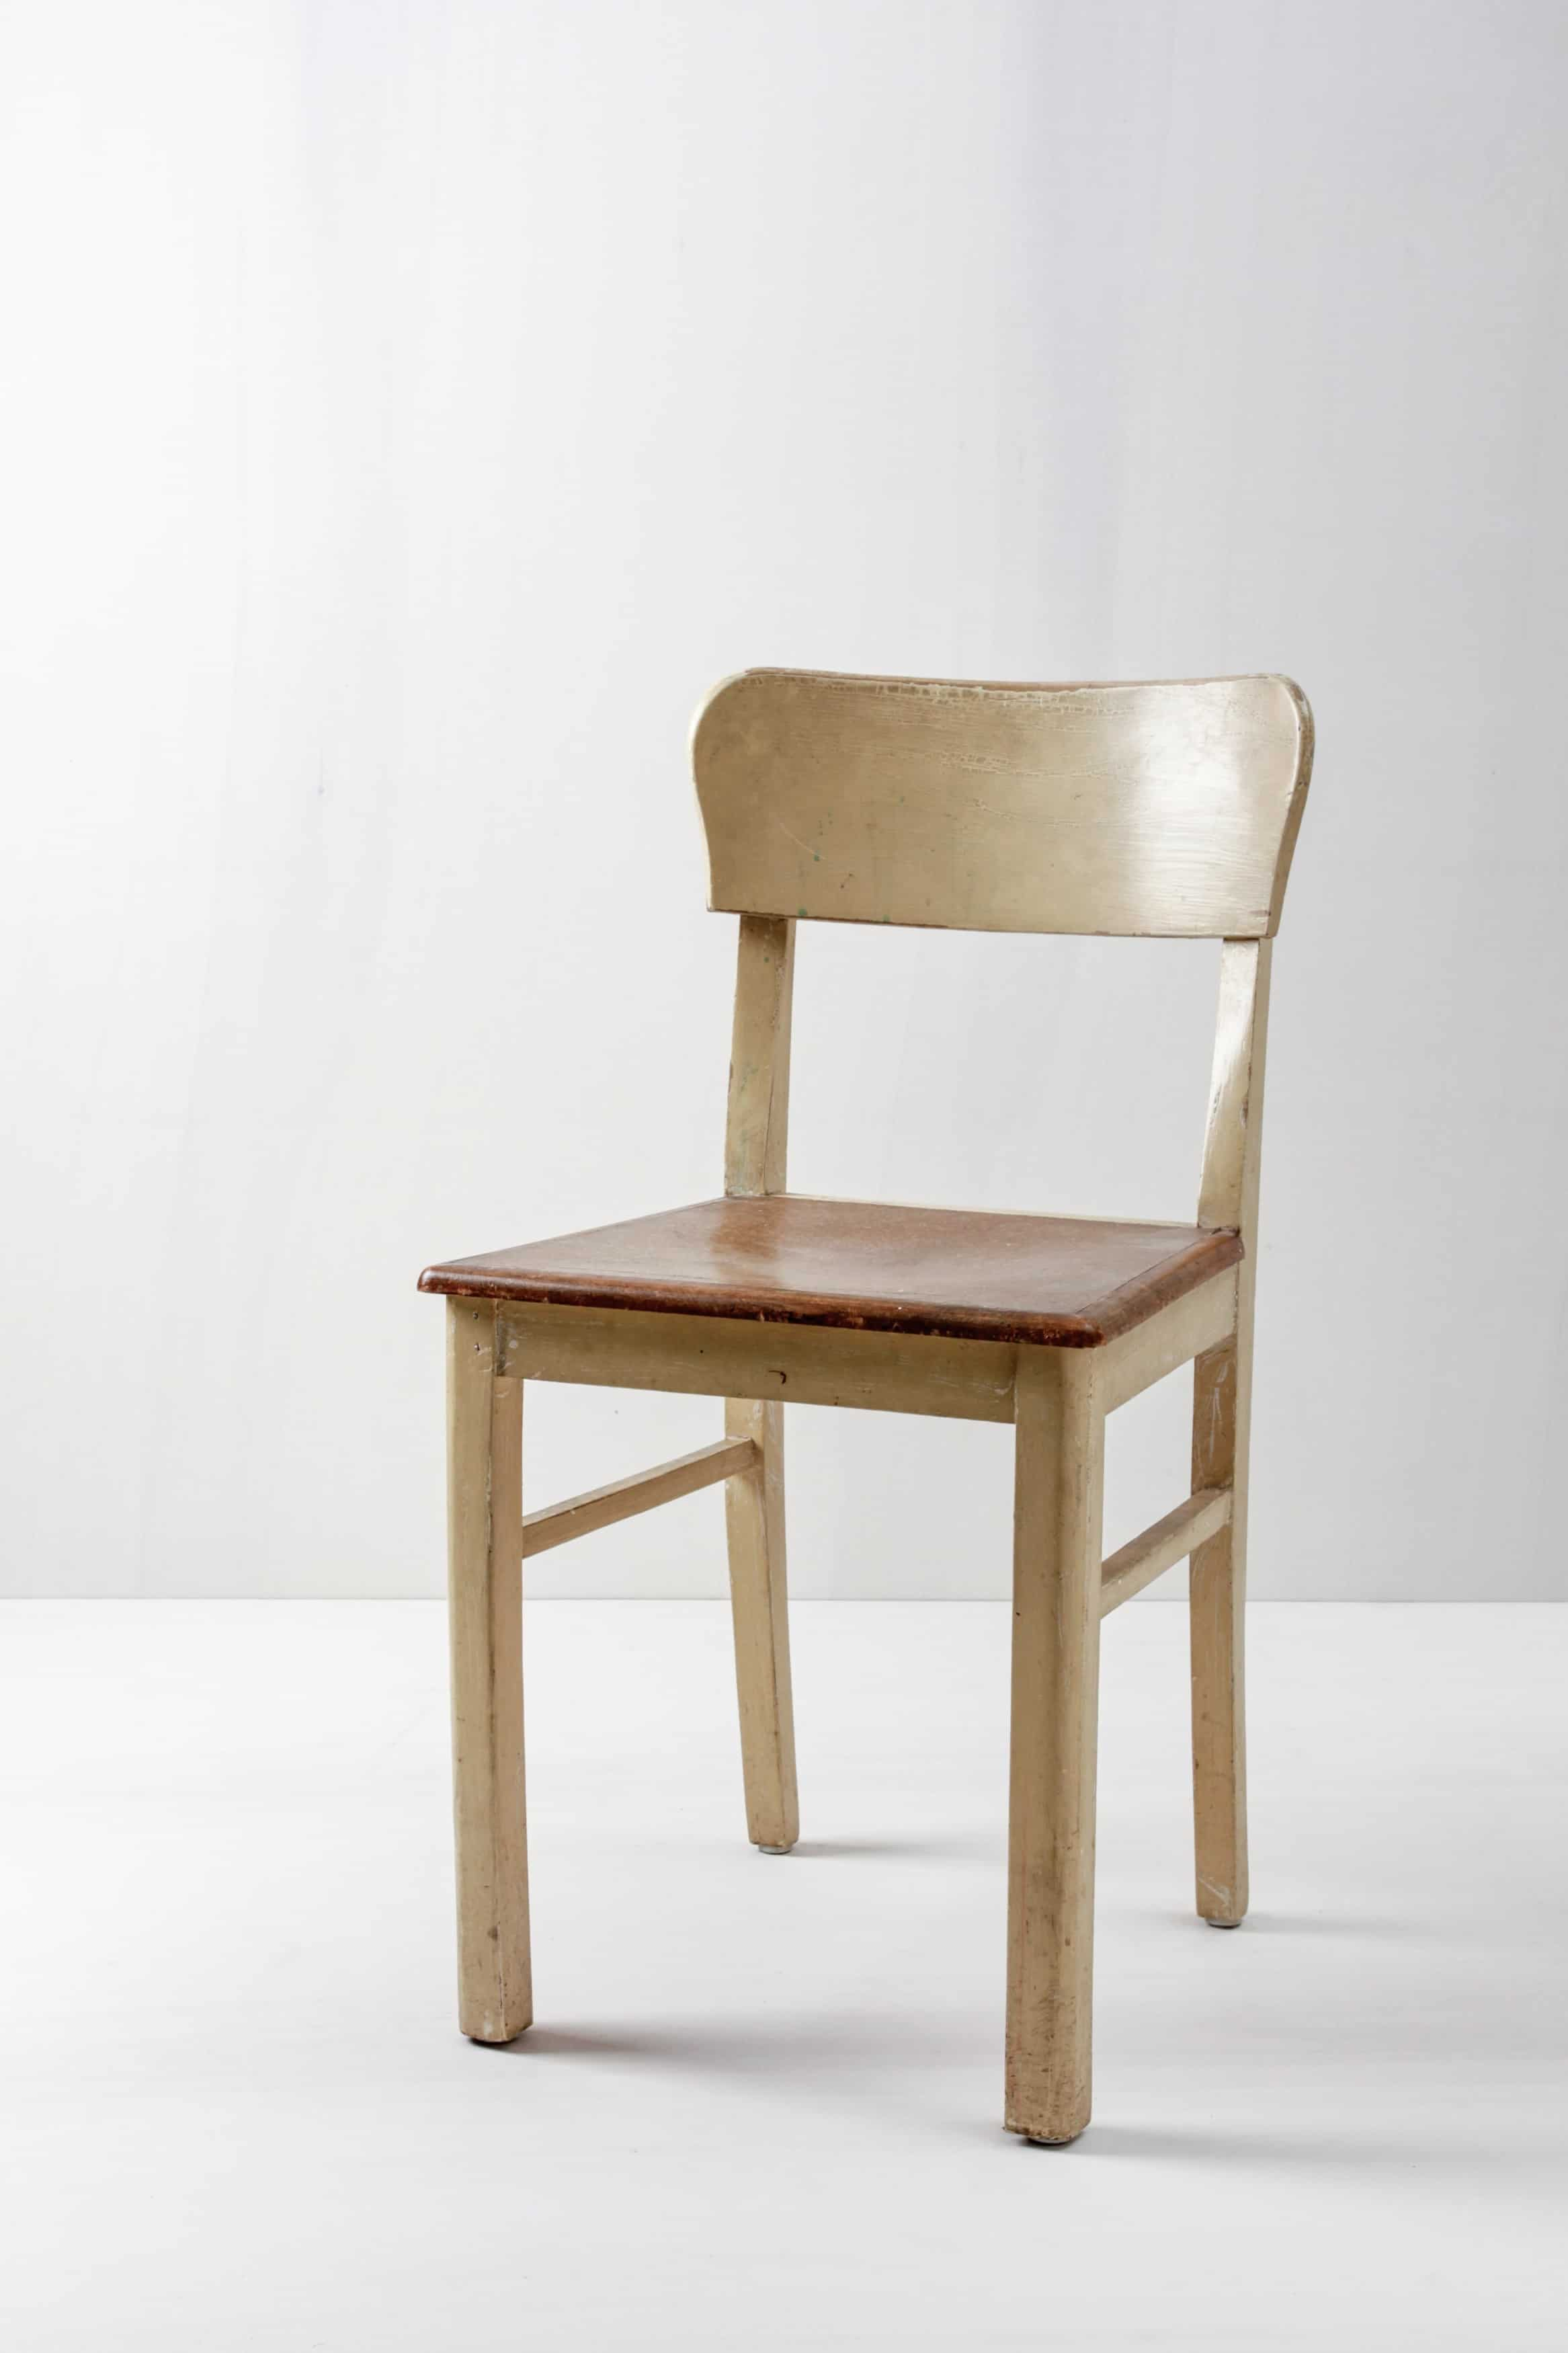 Bauhaus chairs for rent, Berlin, Hamburg & Cologne